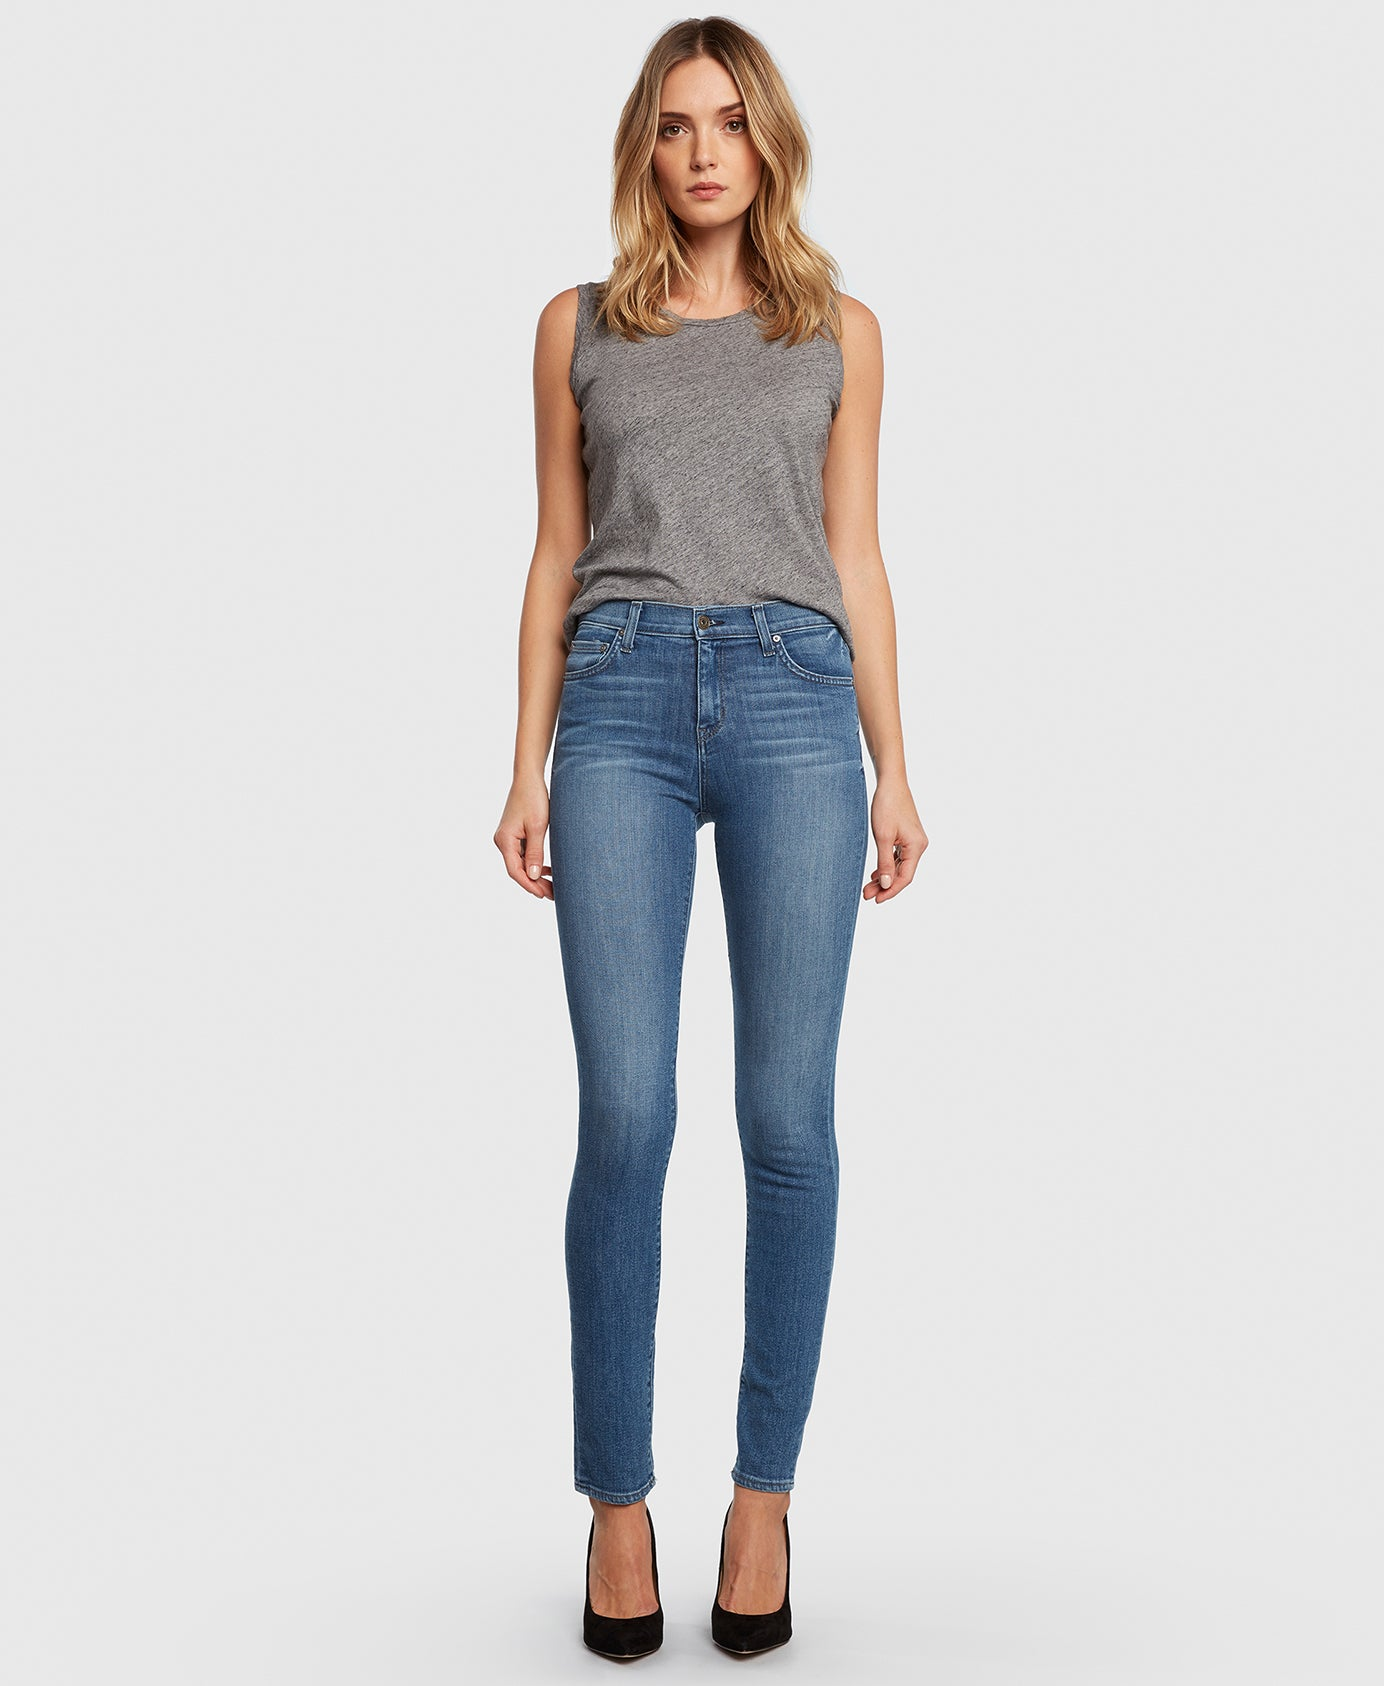 Principle BEAUTY in Summerland Skinny Jeans